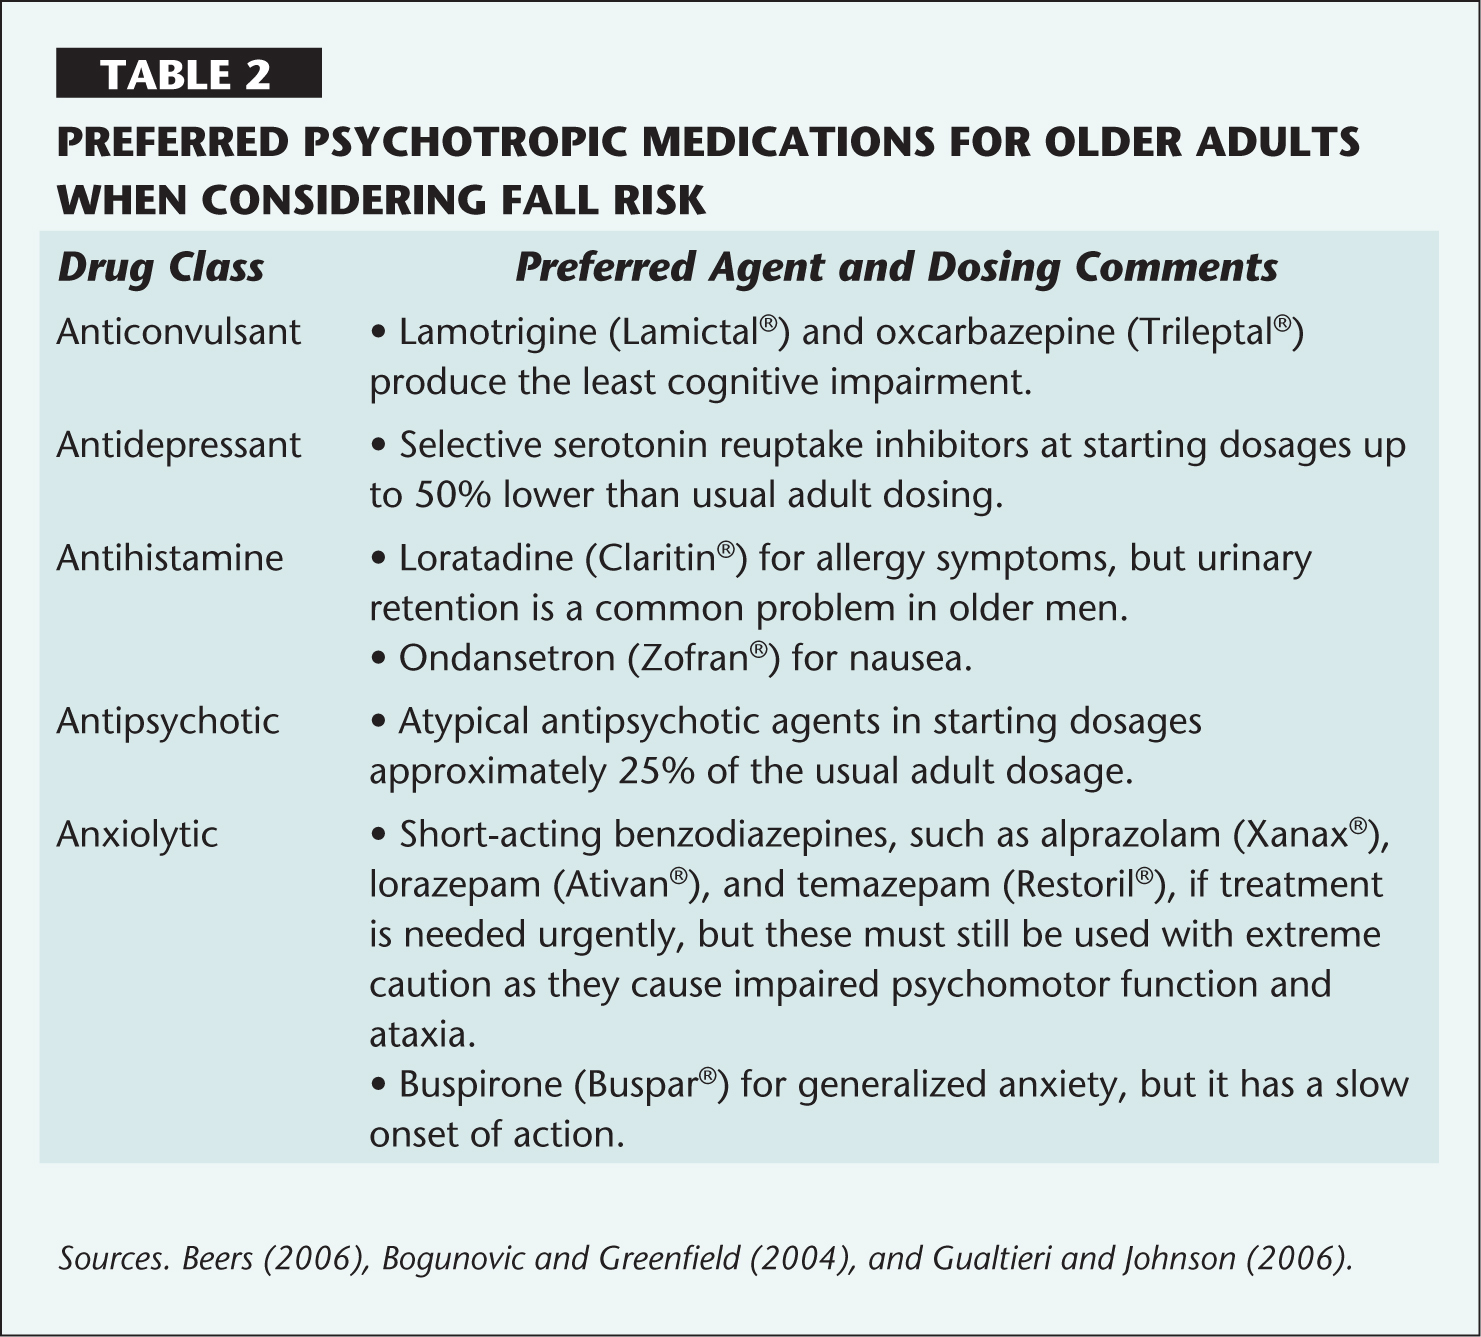 Preferred Psychotropic Medications for Older Adults when Considering Fall Risk